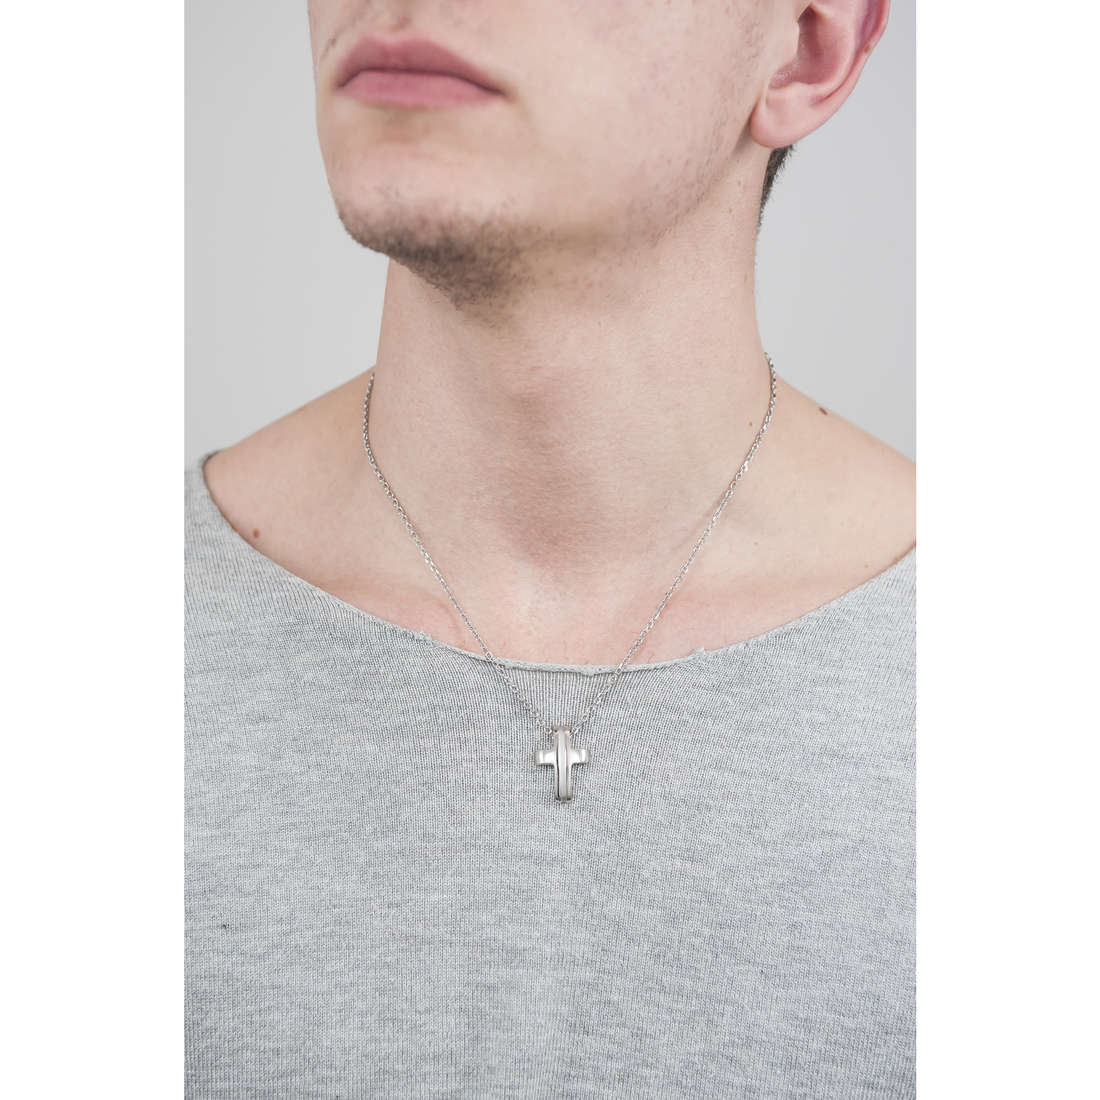 Brosway colliers Medieval homme BMV01 photo wearing